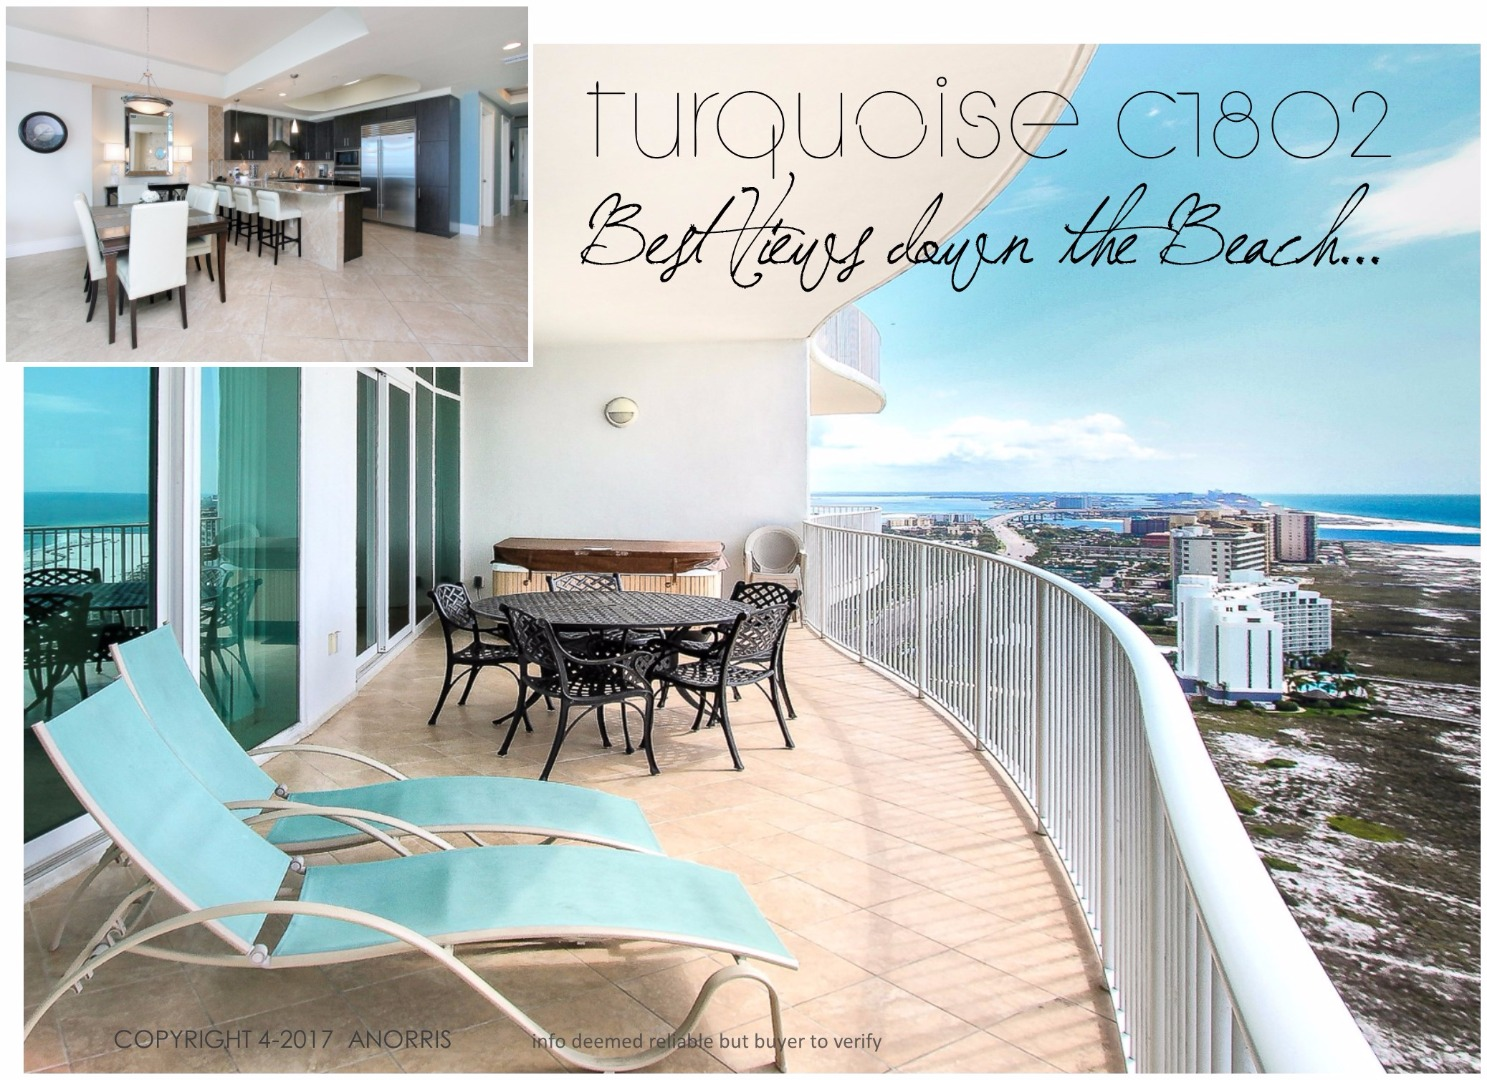 SOLD!    TurquoiseC1802.com  Best Views Down the Beach.. Best Price $50k Under Market Value